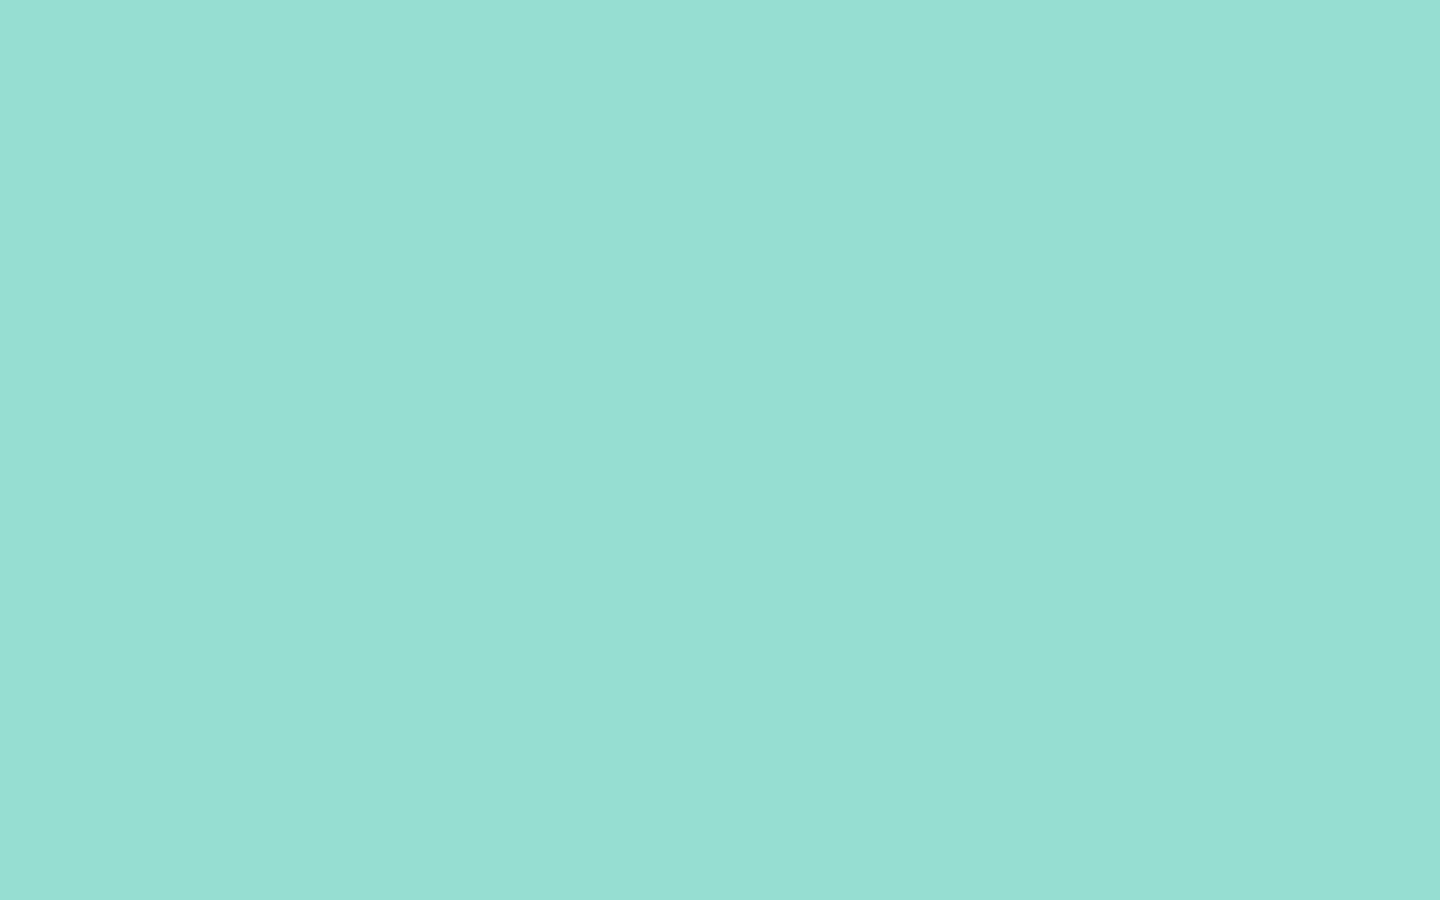 1440x900 Pale Robin Egg Blue Solid Color Background